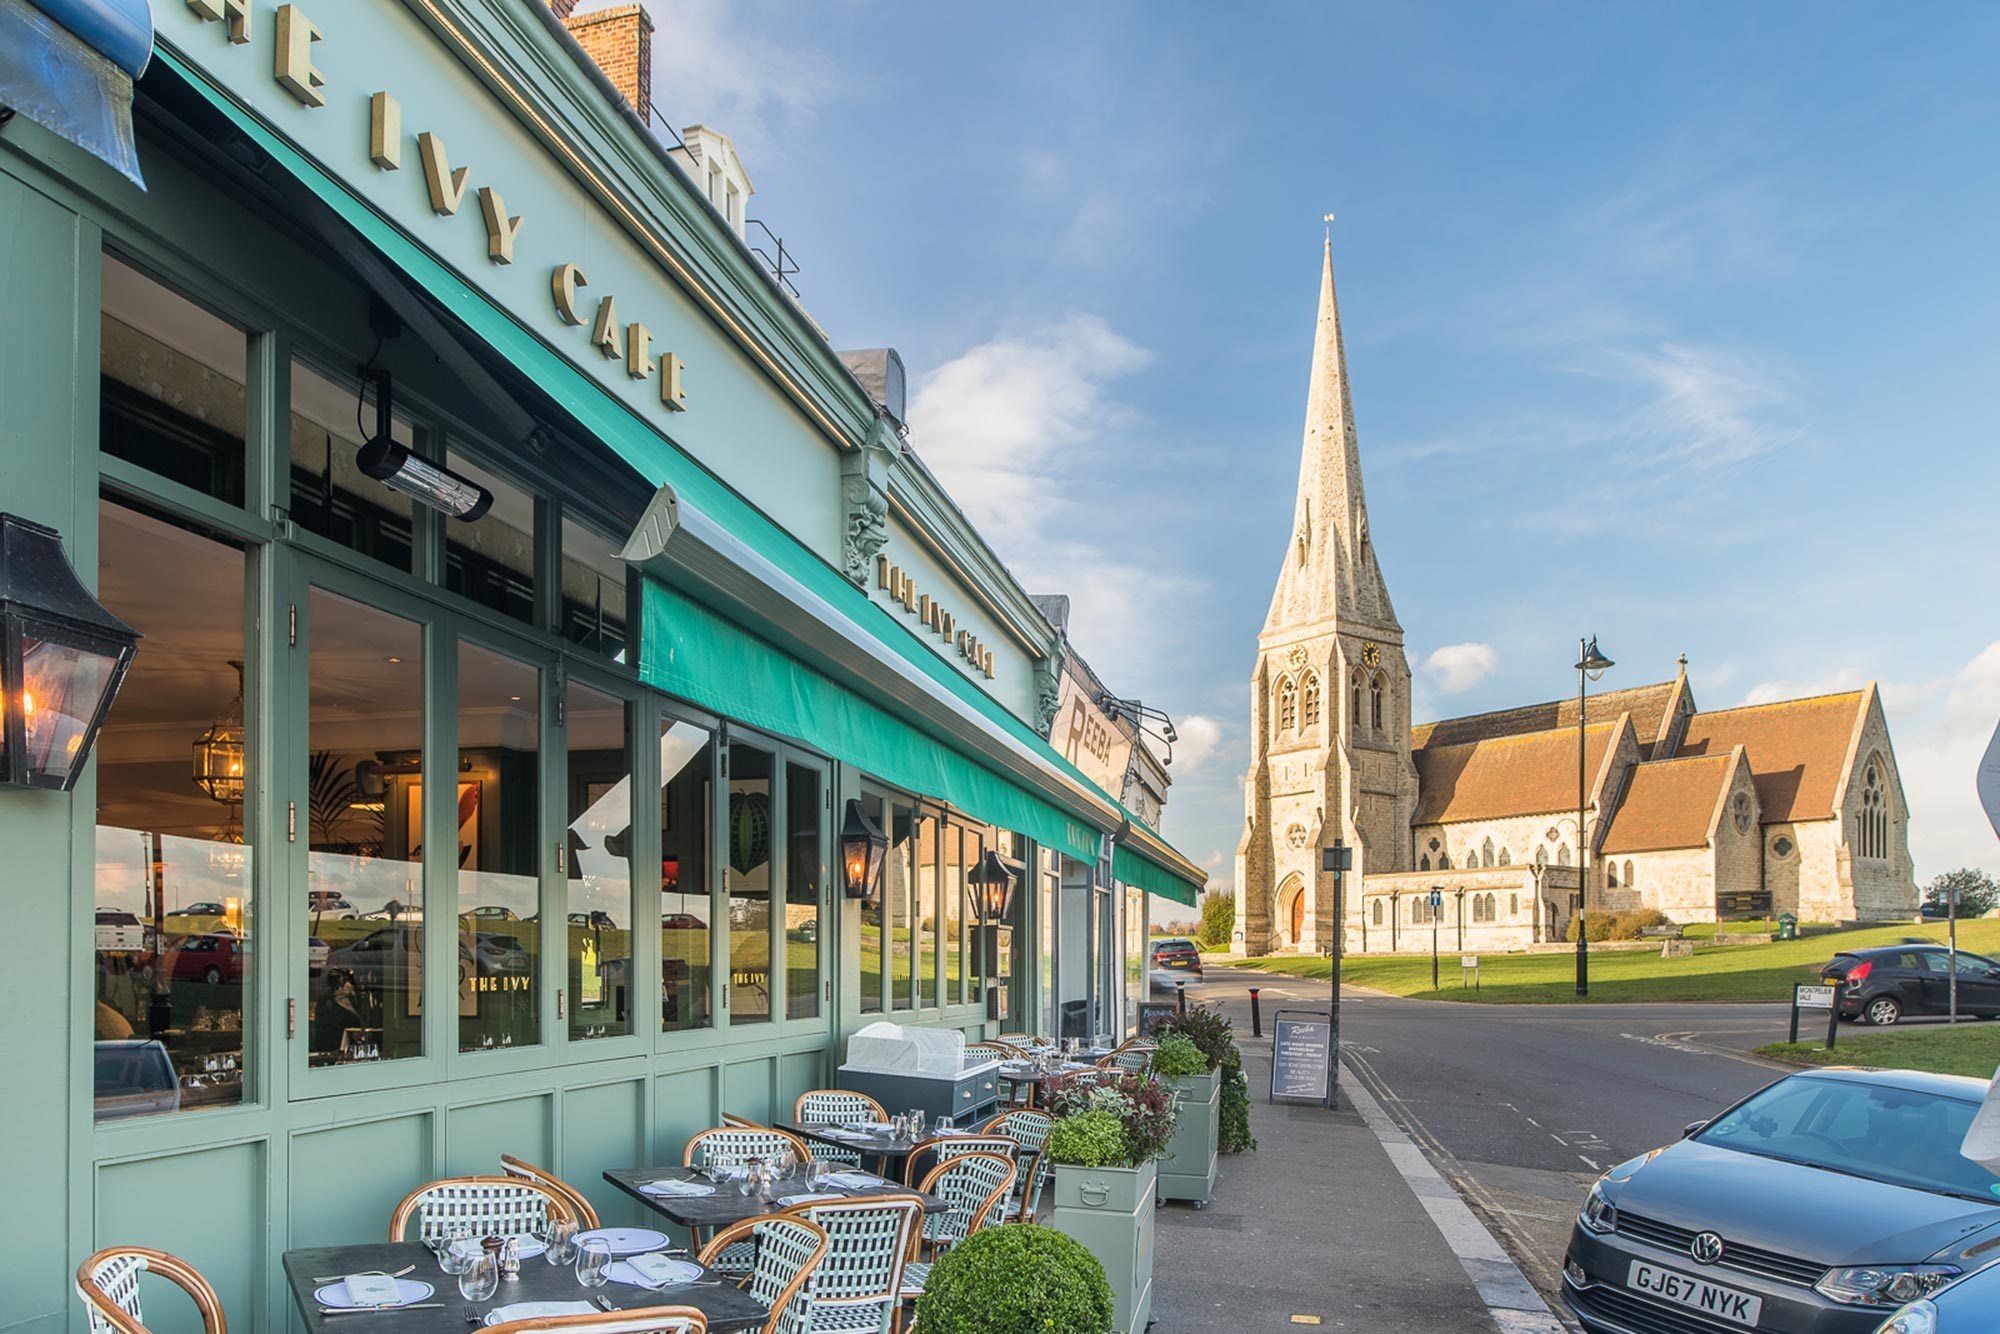 Restaurant in Blackheath - The Ivy Cafe, Blackheath - The Ivy Café, Blackheath